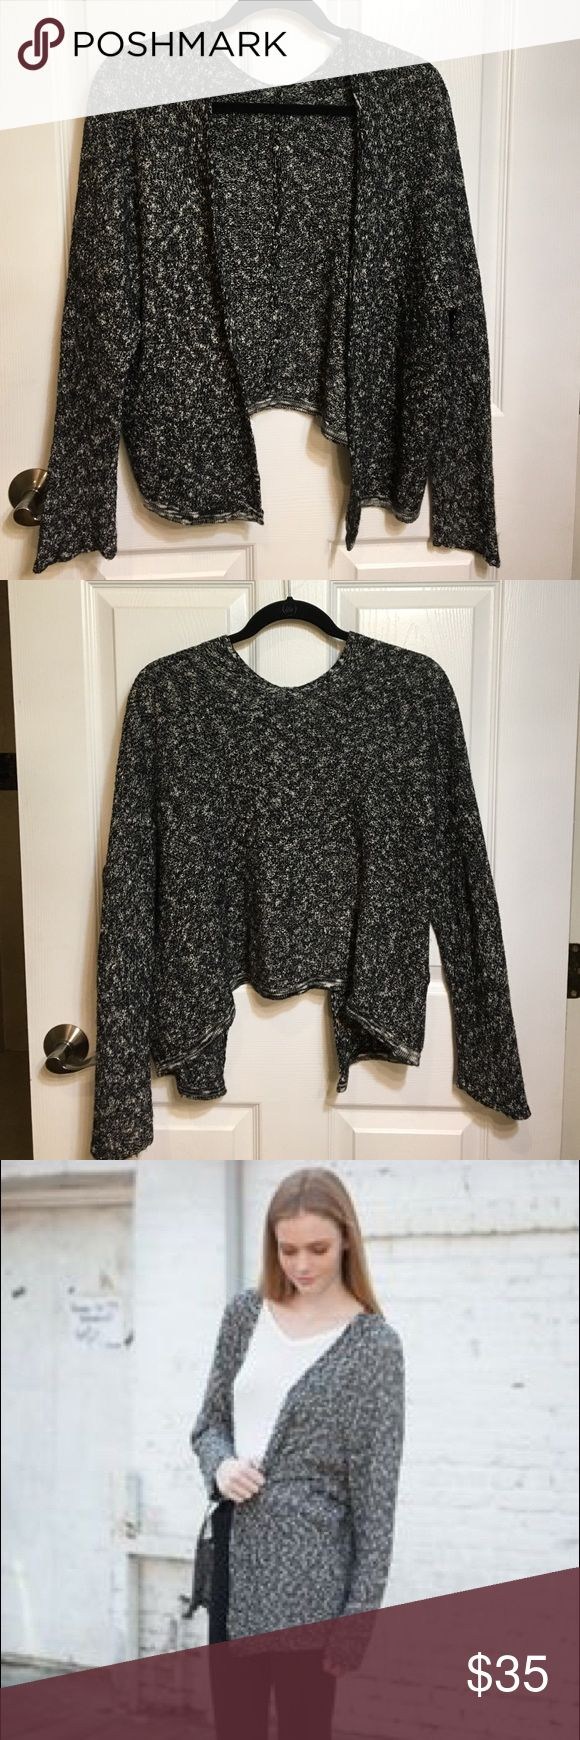 Brandy Melville Cardigan Black and white cardigan bought at Brandy Melville 💗 In perfect condition! The sizing is 'one size fits all' but fits like a medium :) Brandy Melville Sweaters Cardigans